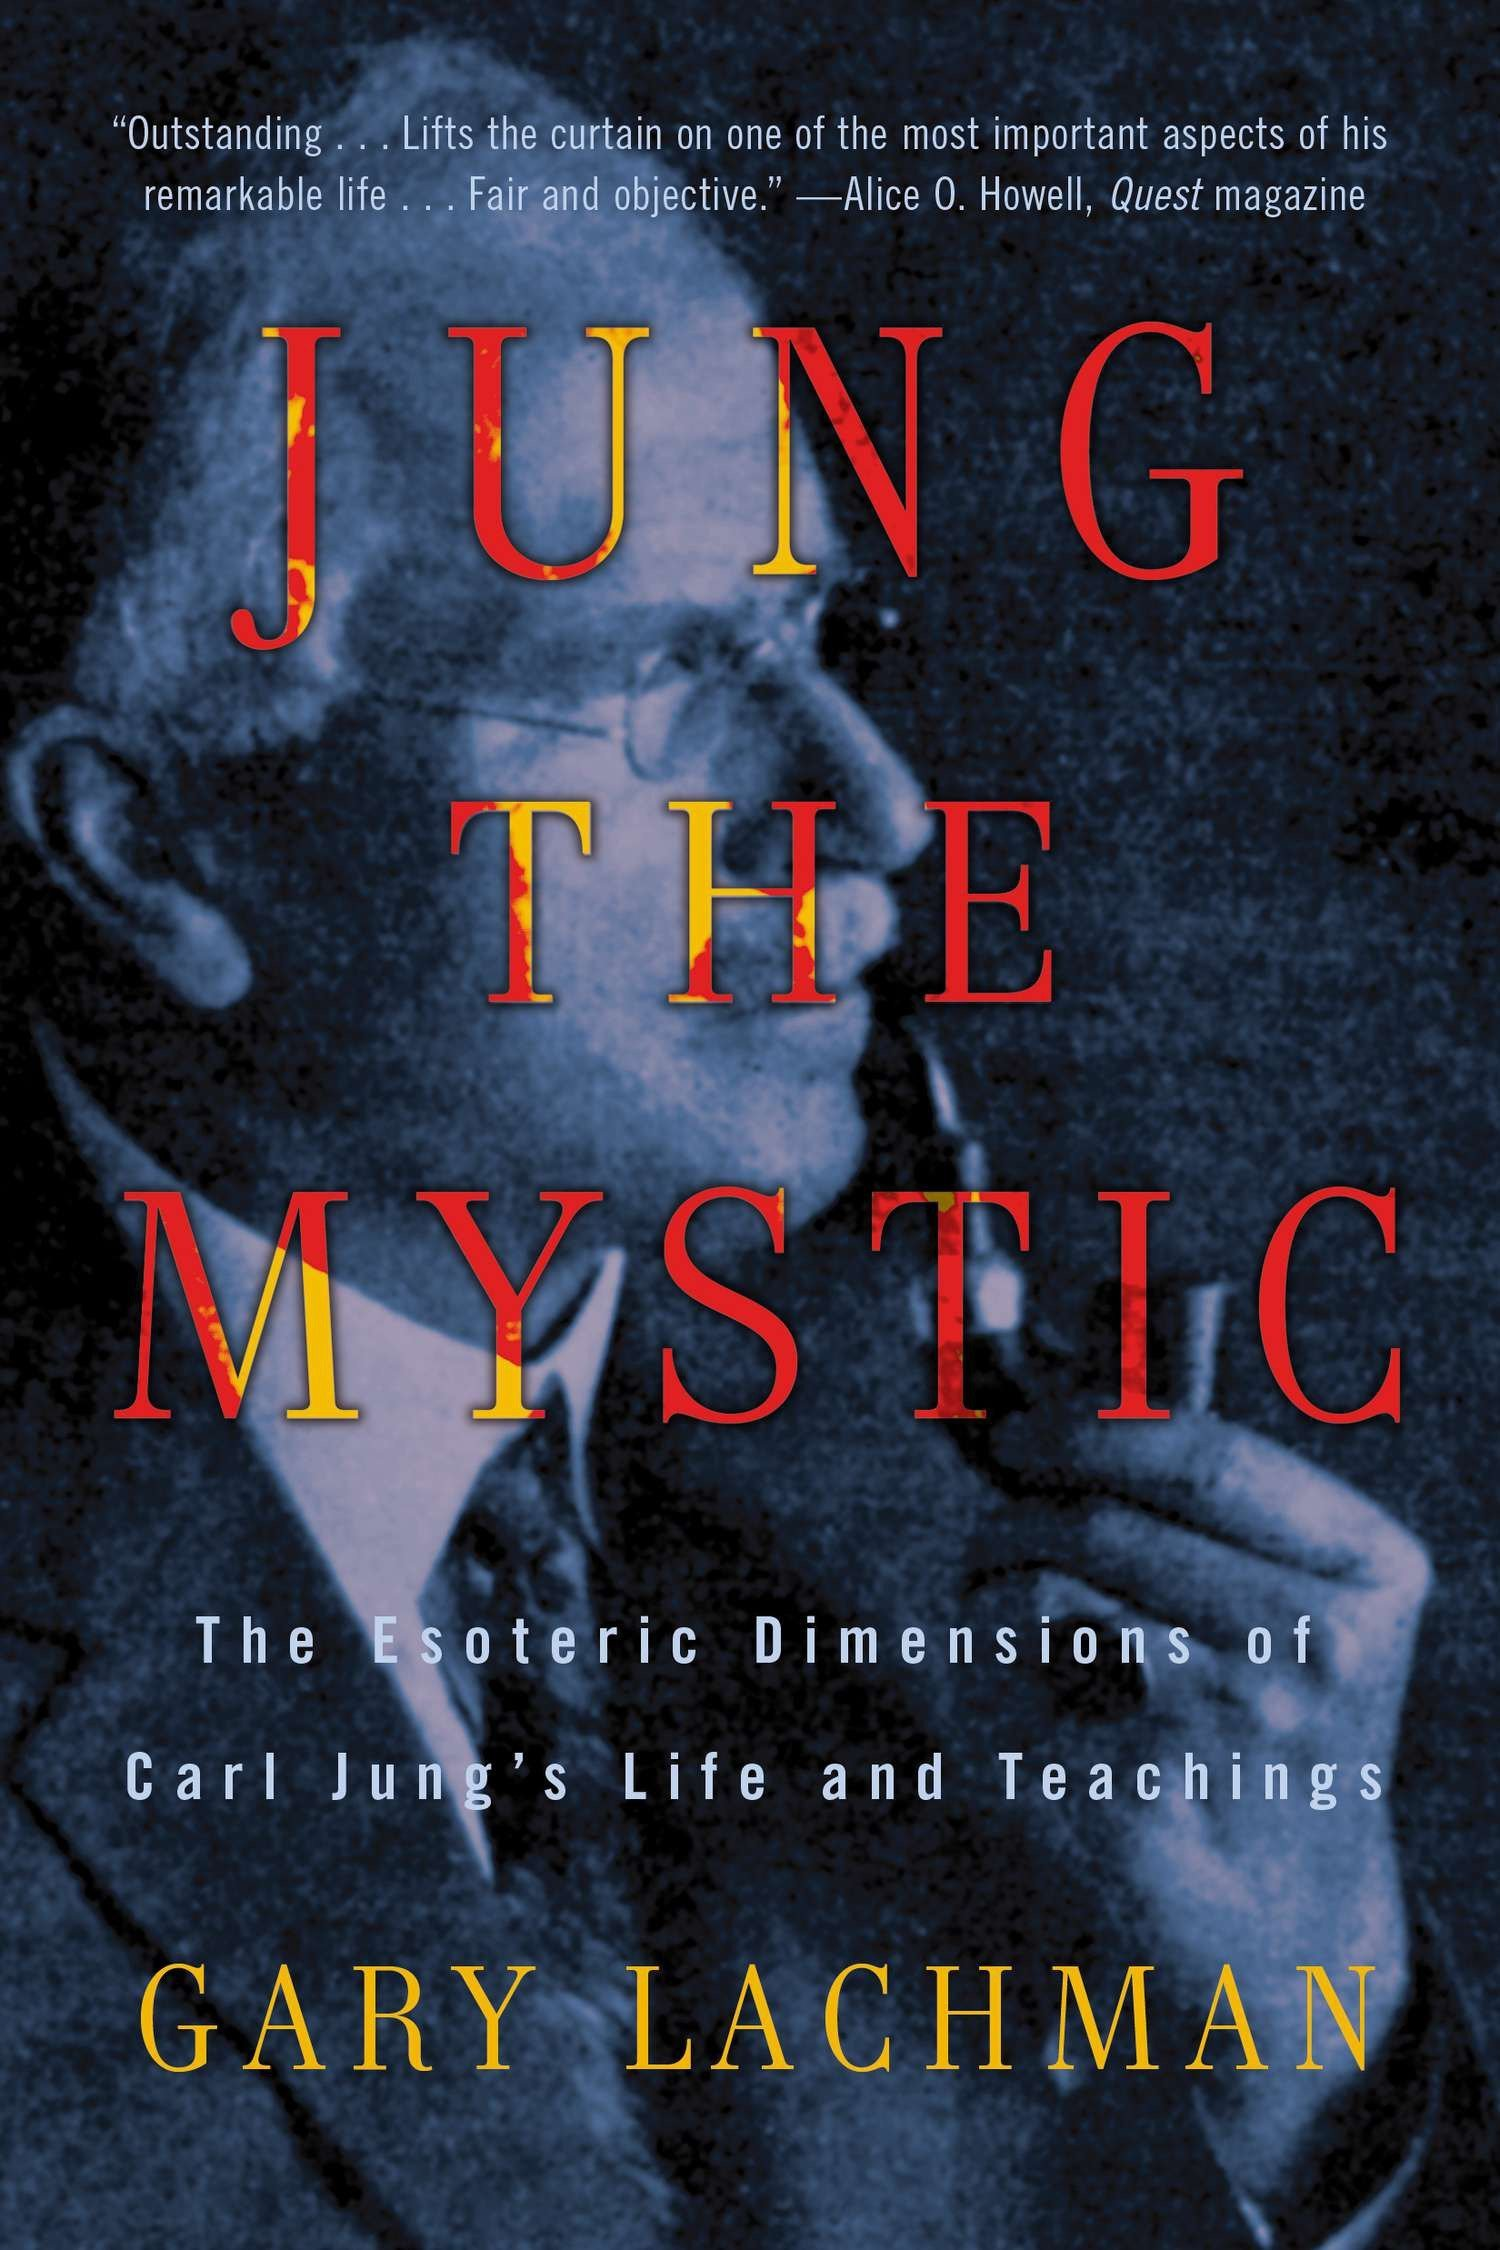 Download Jung the Mystic: The Esoteric Dimensions of Carl Jung's Life and Teachings pdf